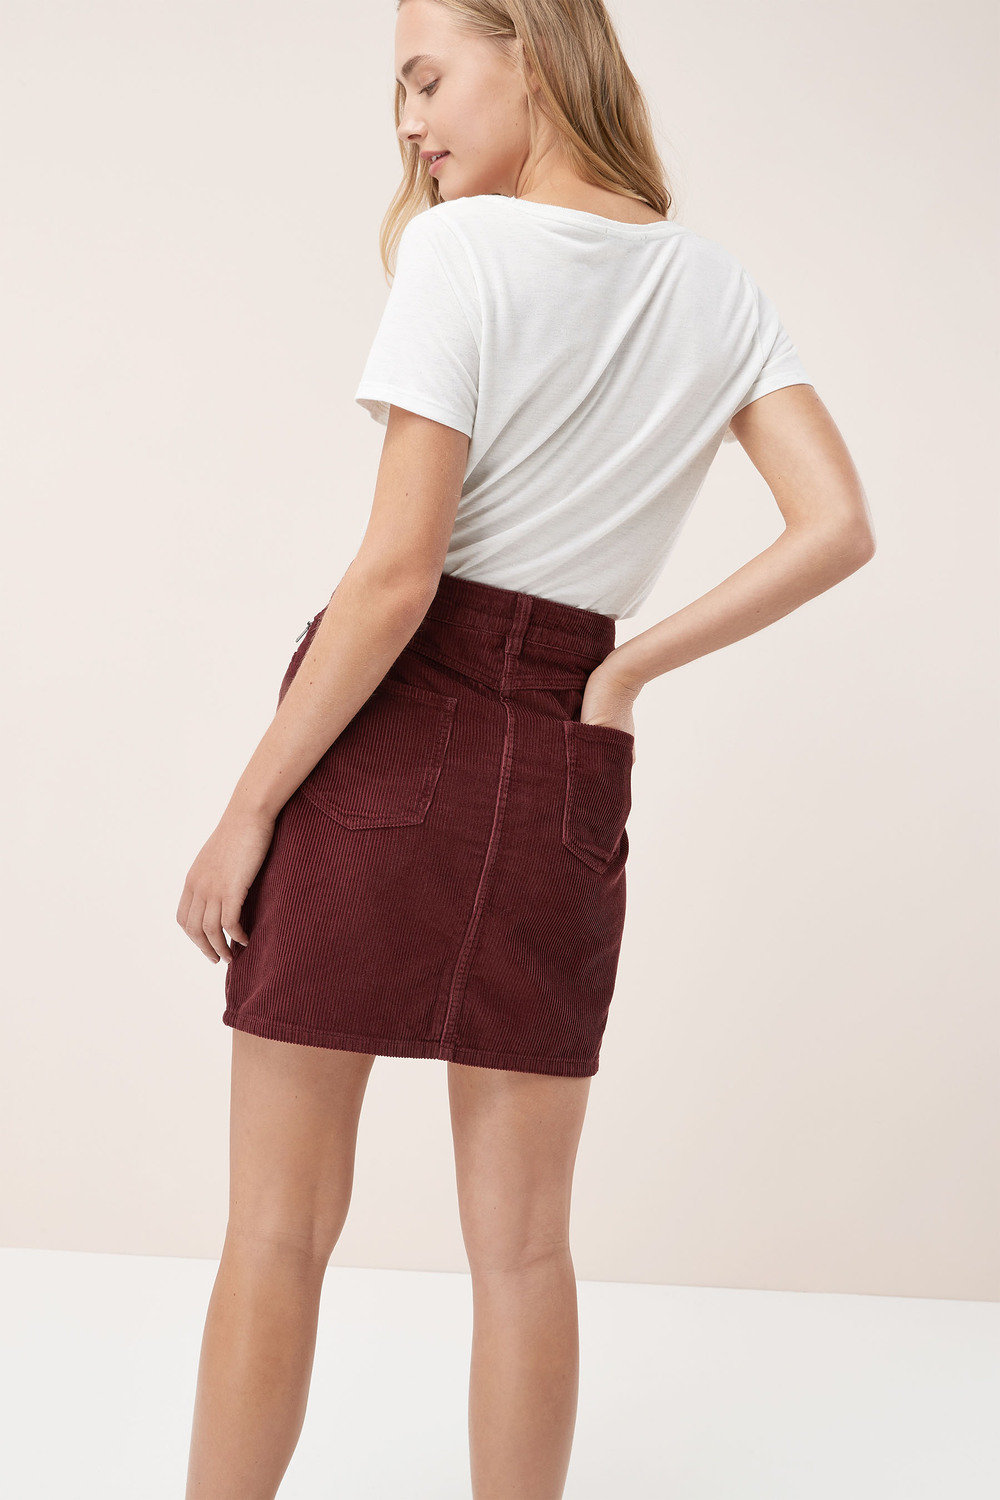 389c7c7b1 Next Cord Mini Skirt Online | Shop EziBuy